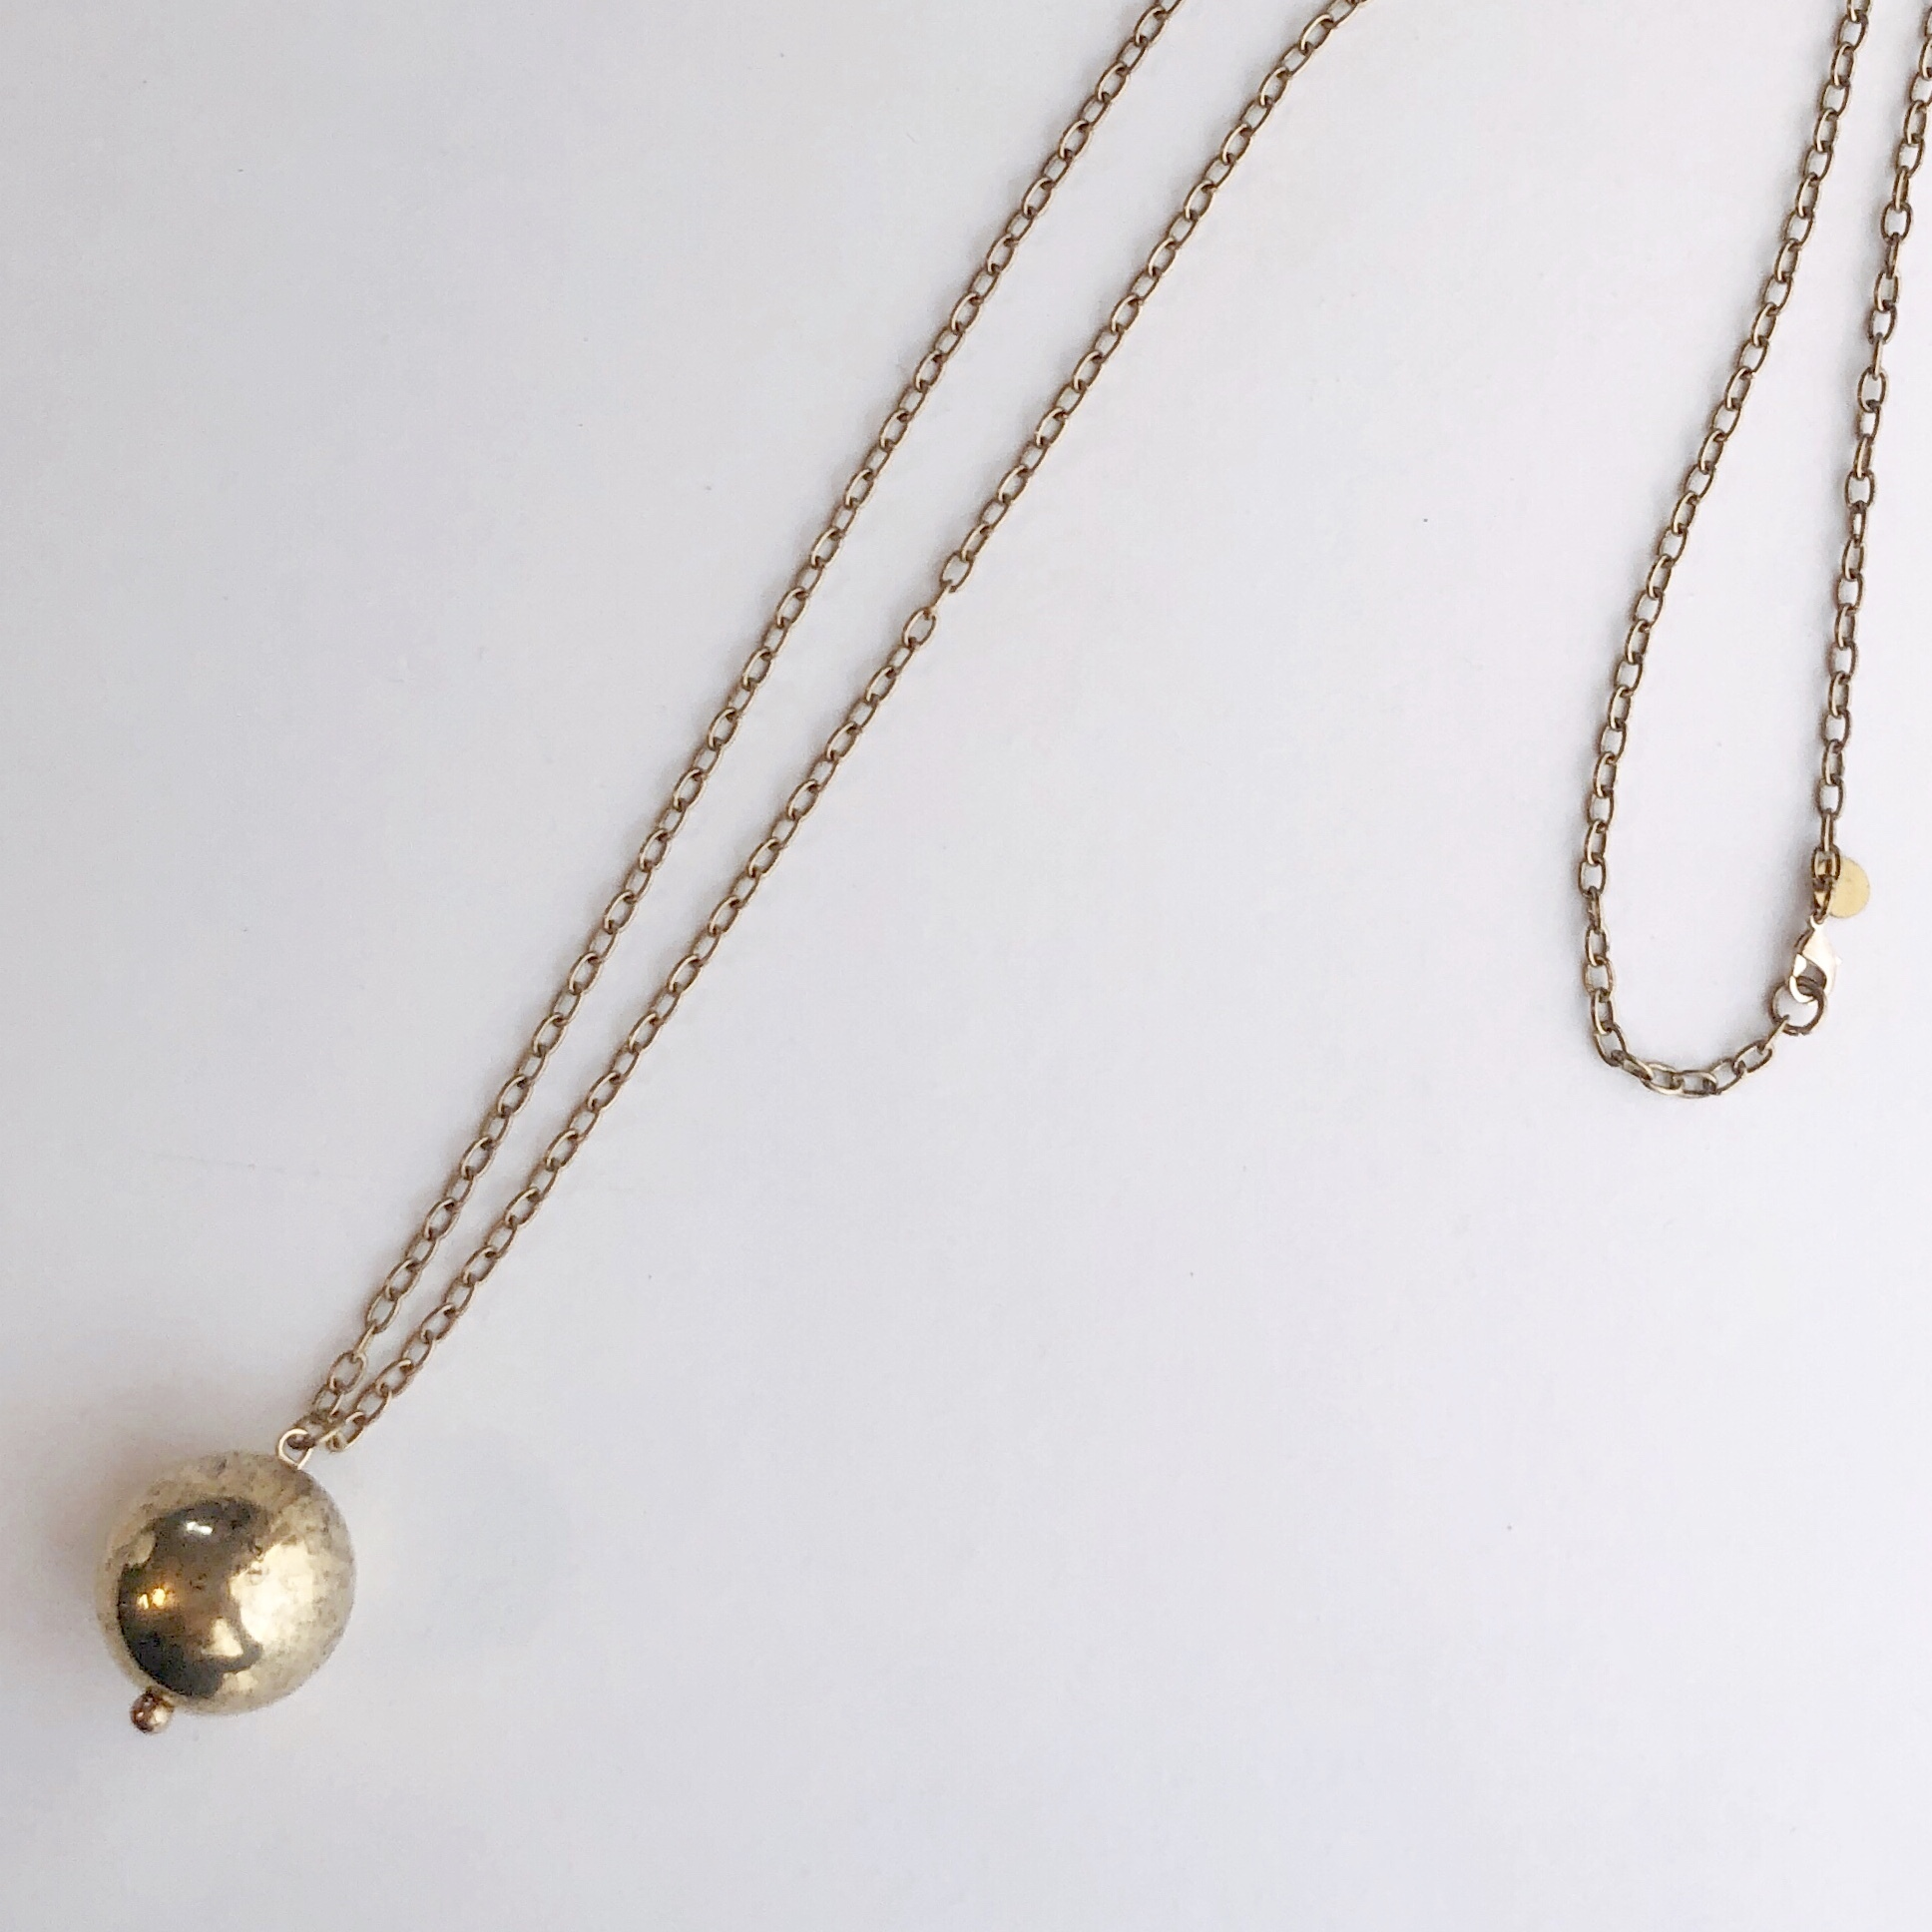 Ball charm Necklace NC-007